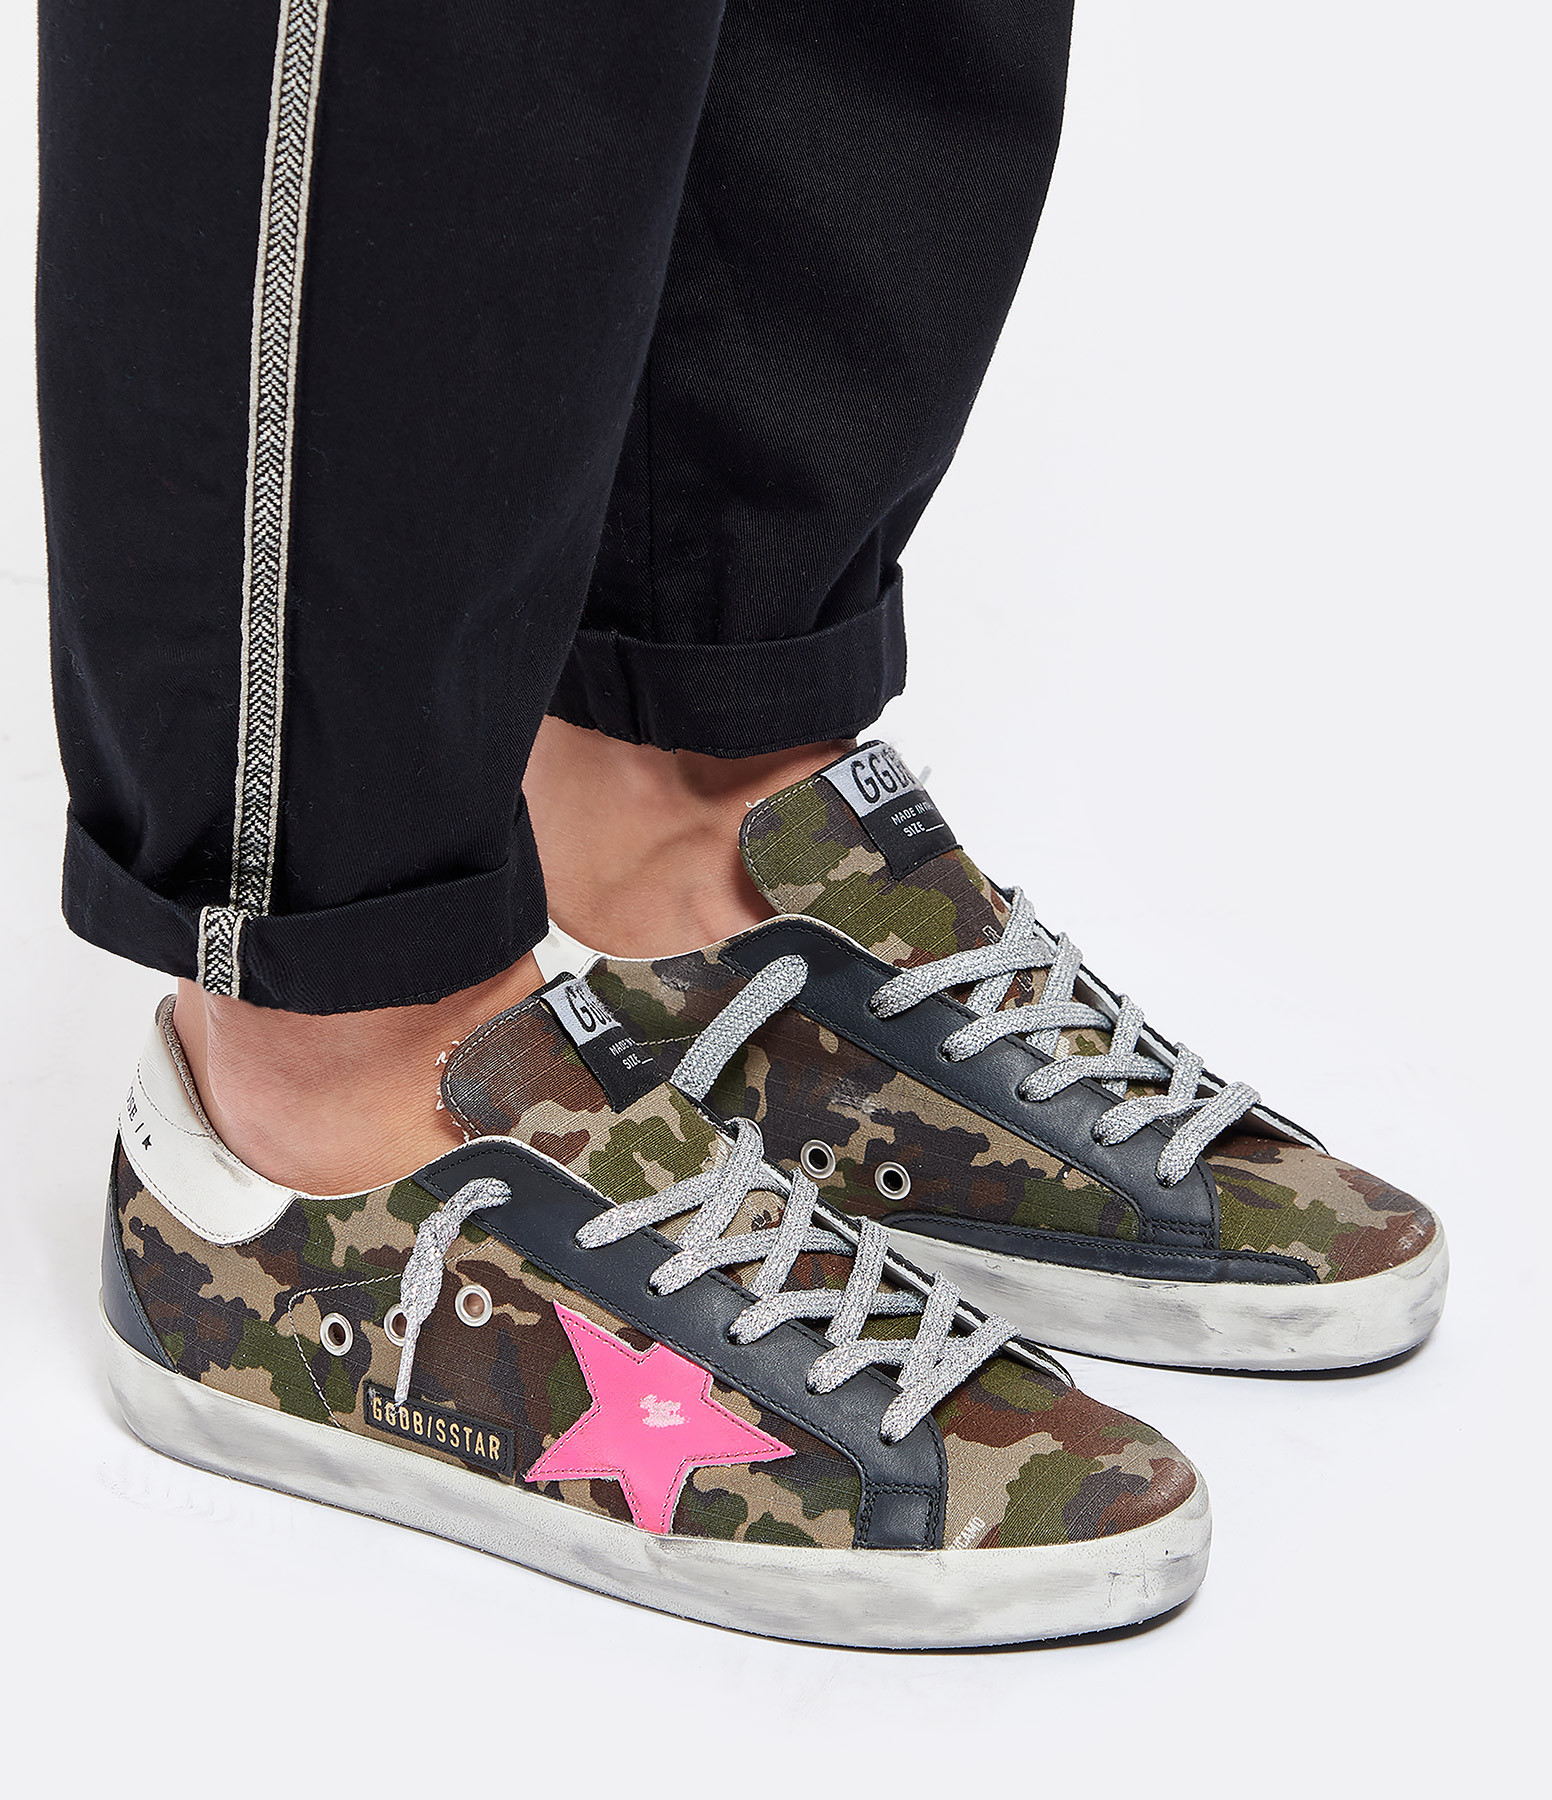 GOLDEN GOOSE - Baskets Superstar Cuir Camouflage Fushia Fluo